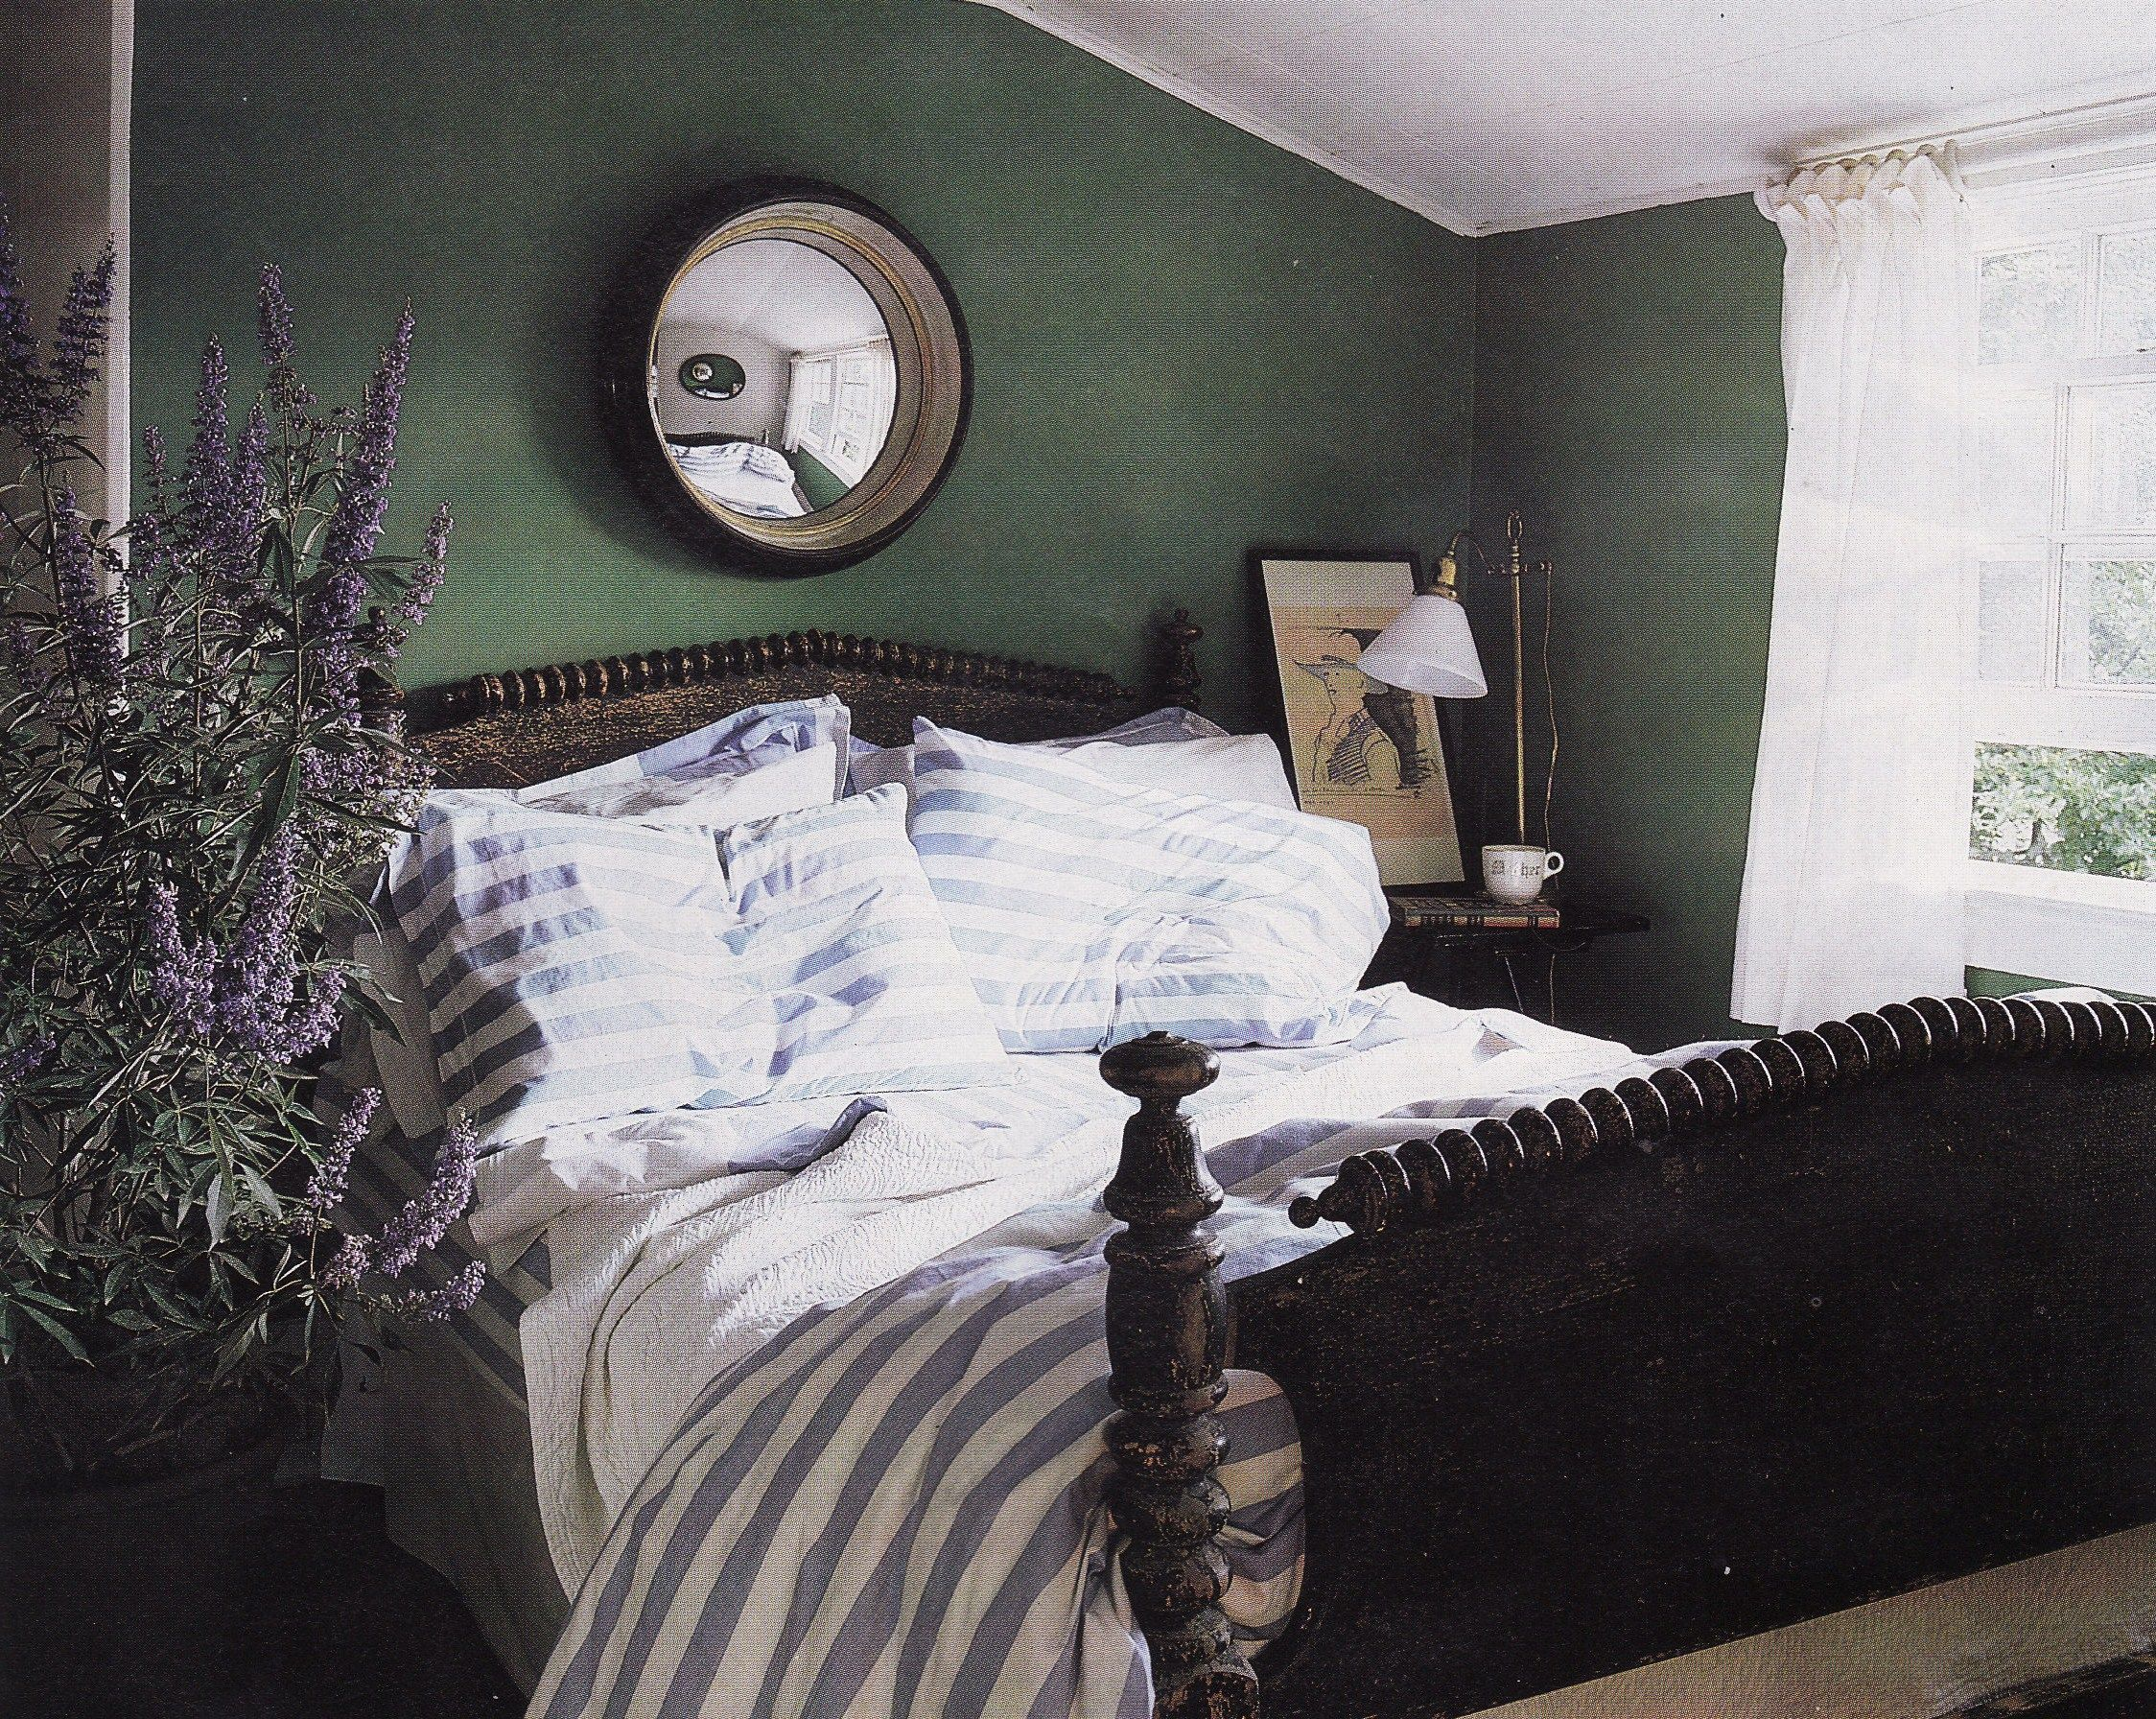 Green cottage bedroom by Fox-Nahem via http://tokyojinja.com/2011/01/20/gorgeous-green-rooms-inspired-by-a-bamboo-forest/?blogsub=confirming=confirming#blog_subscription-3